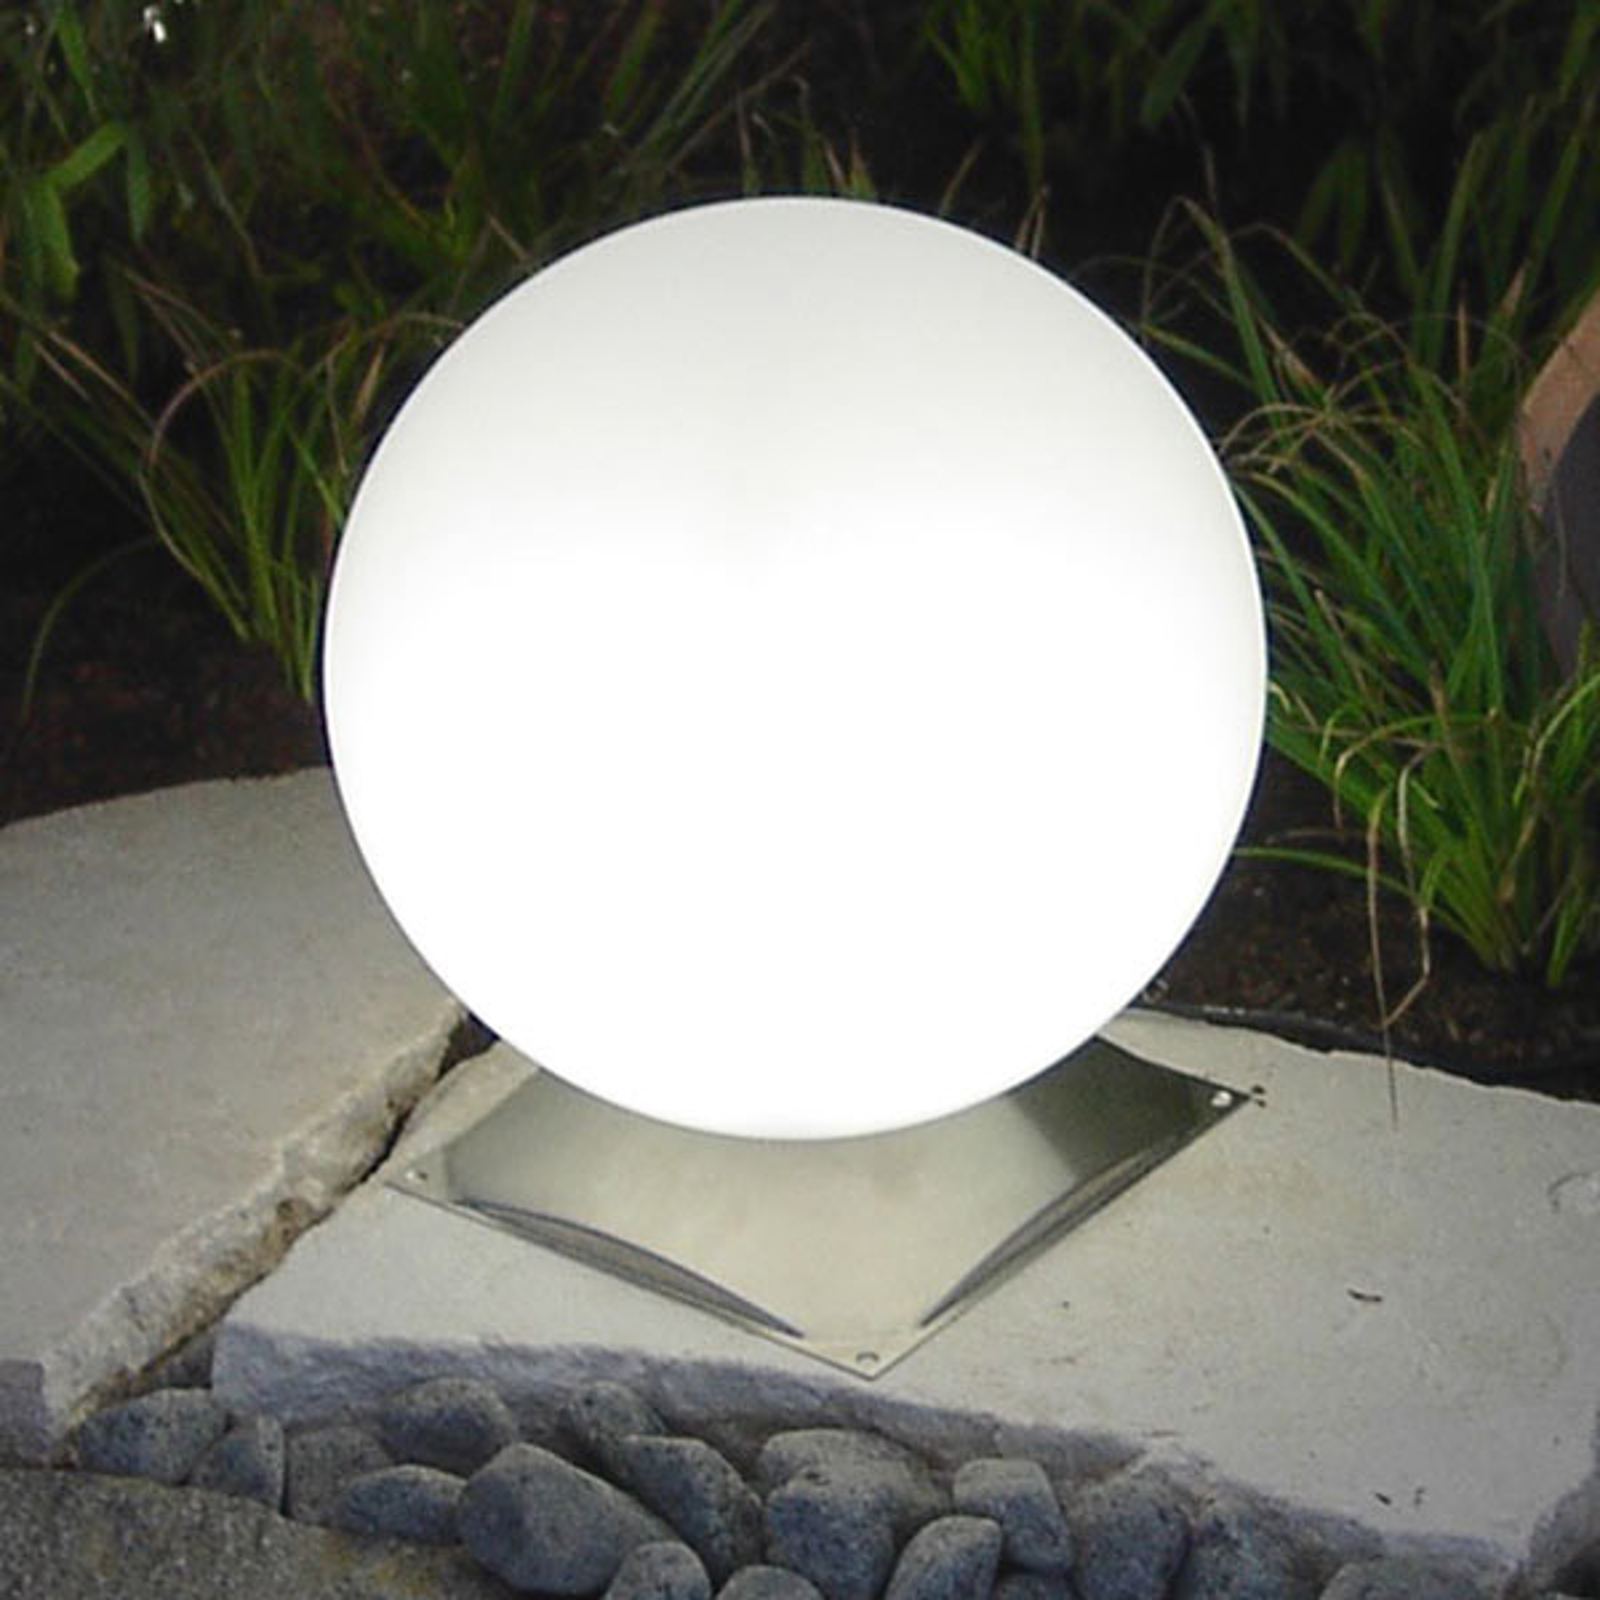 Snowball globe light, white, stainless steel base_3050035X_1